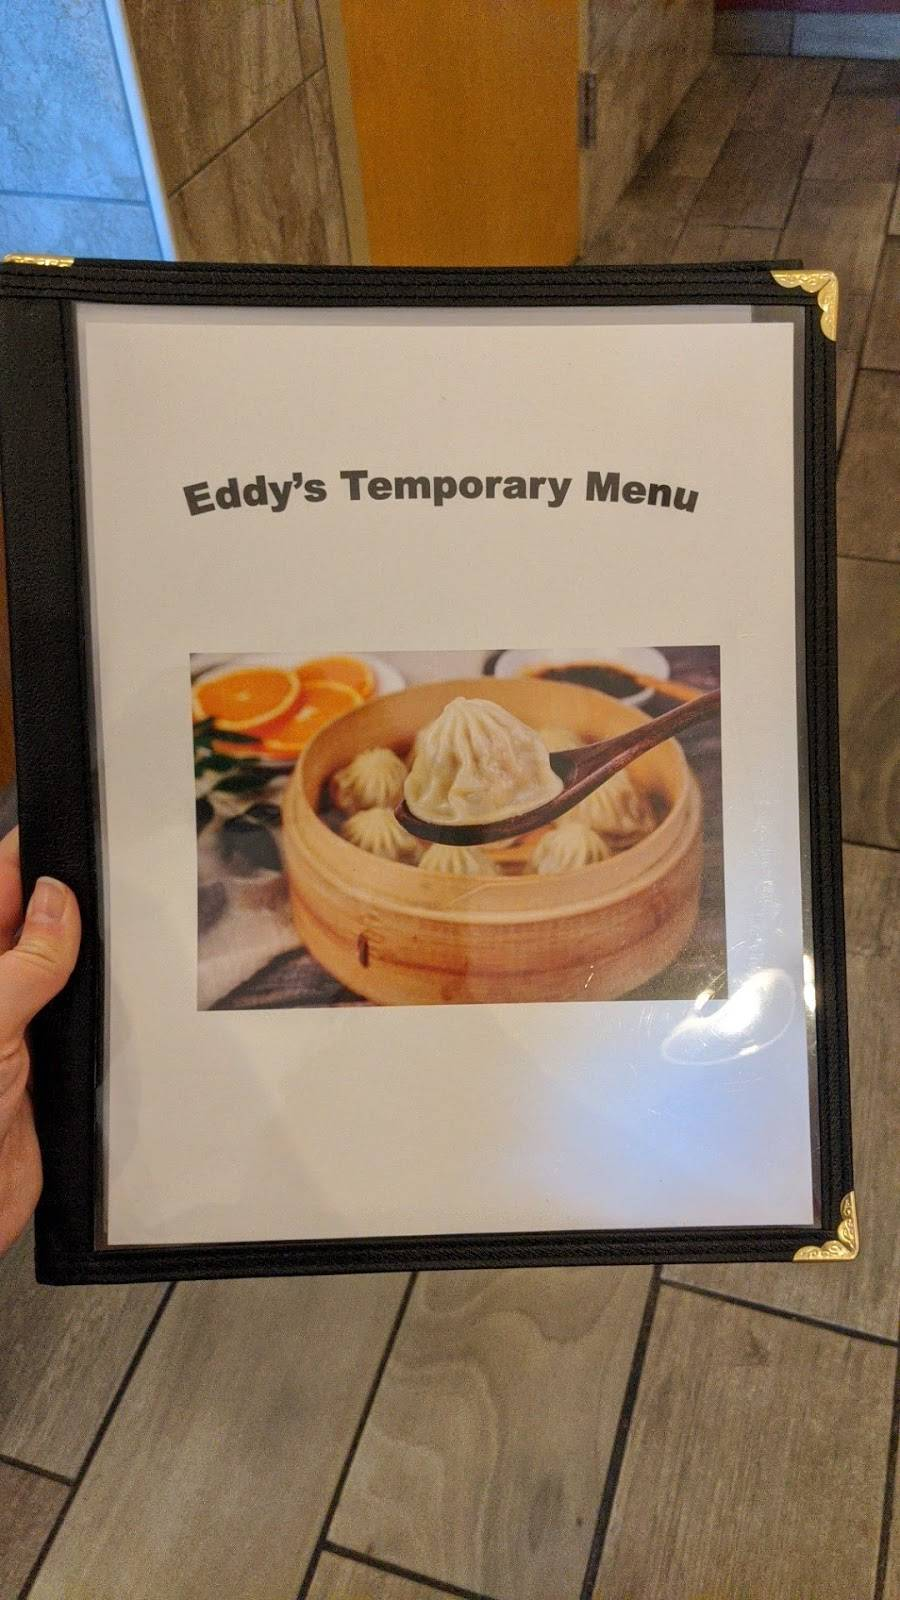 Eddy's Traditional Chinese Cooking   restaurant   1683 Route 9 St Johns Plz, Clifton Park, NY 12065, USA   5189526676 OR +1 518-952-6676